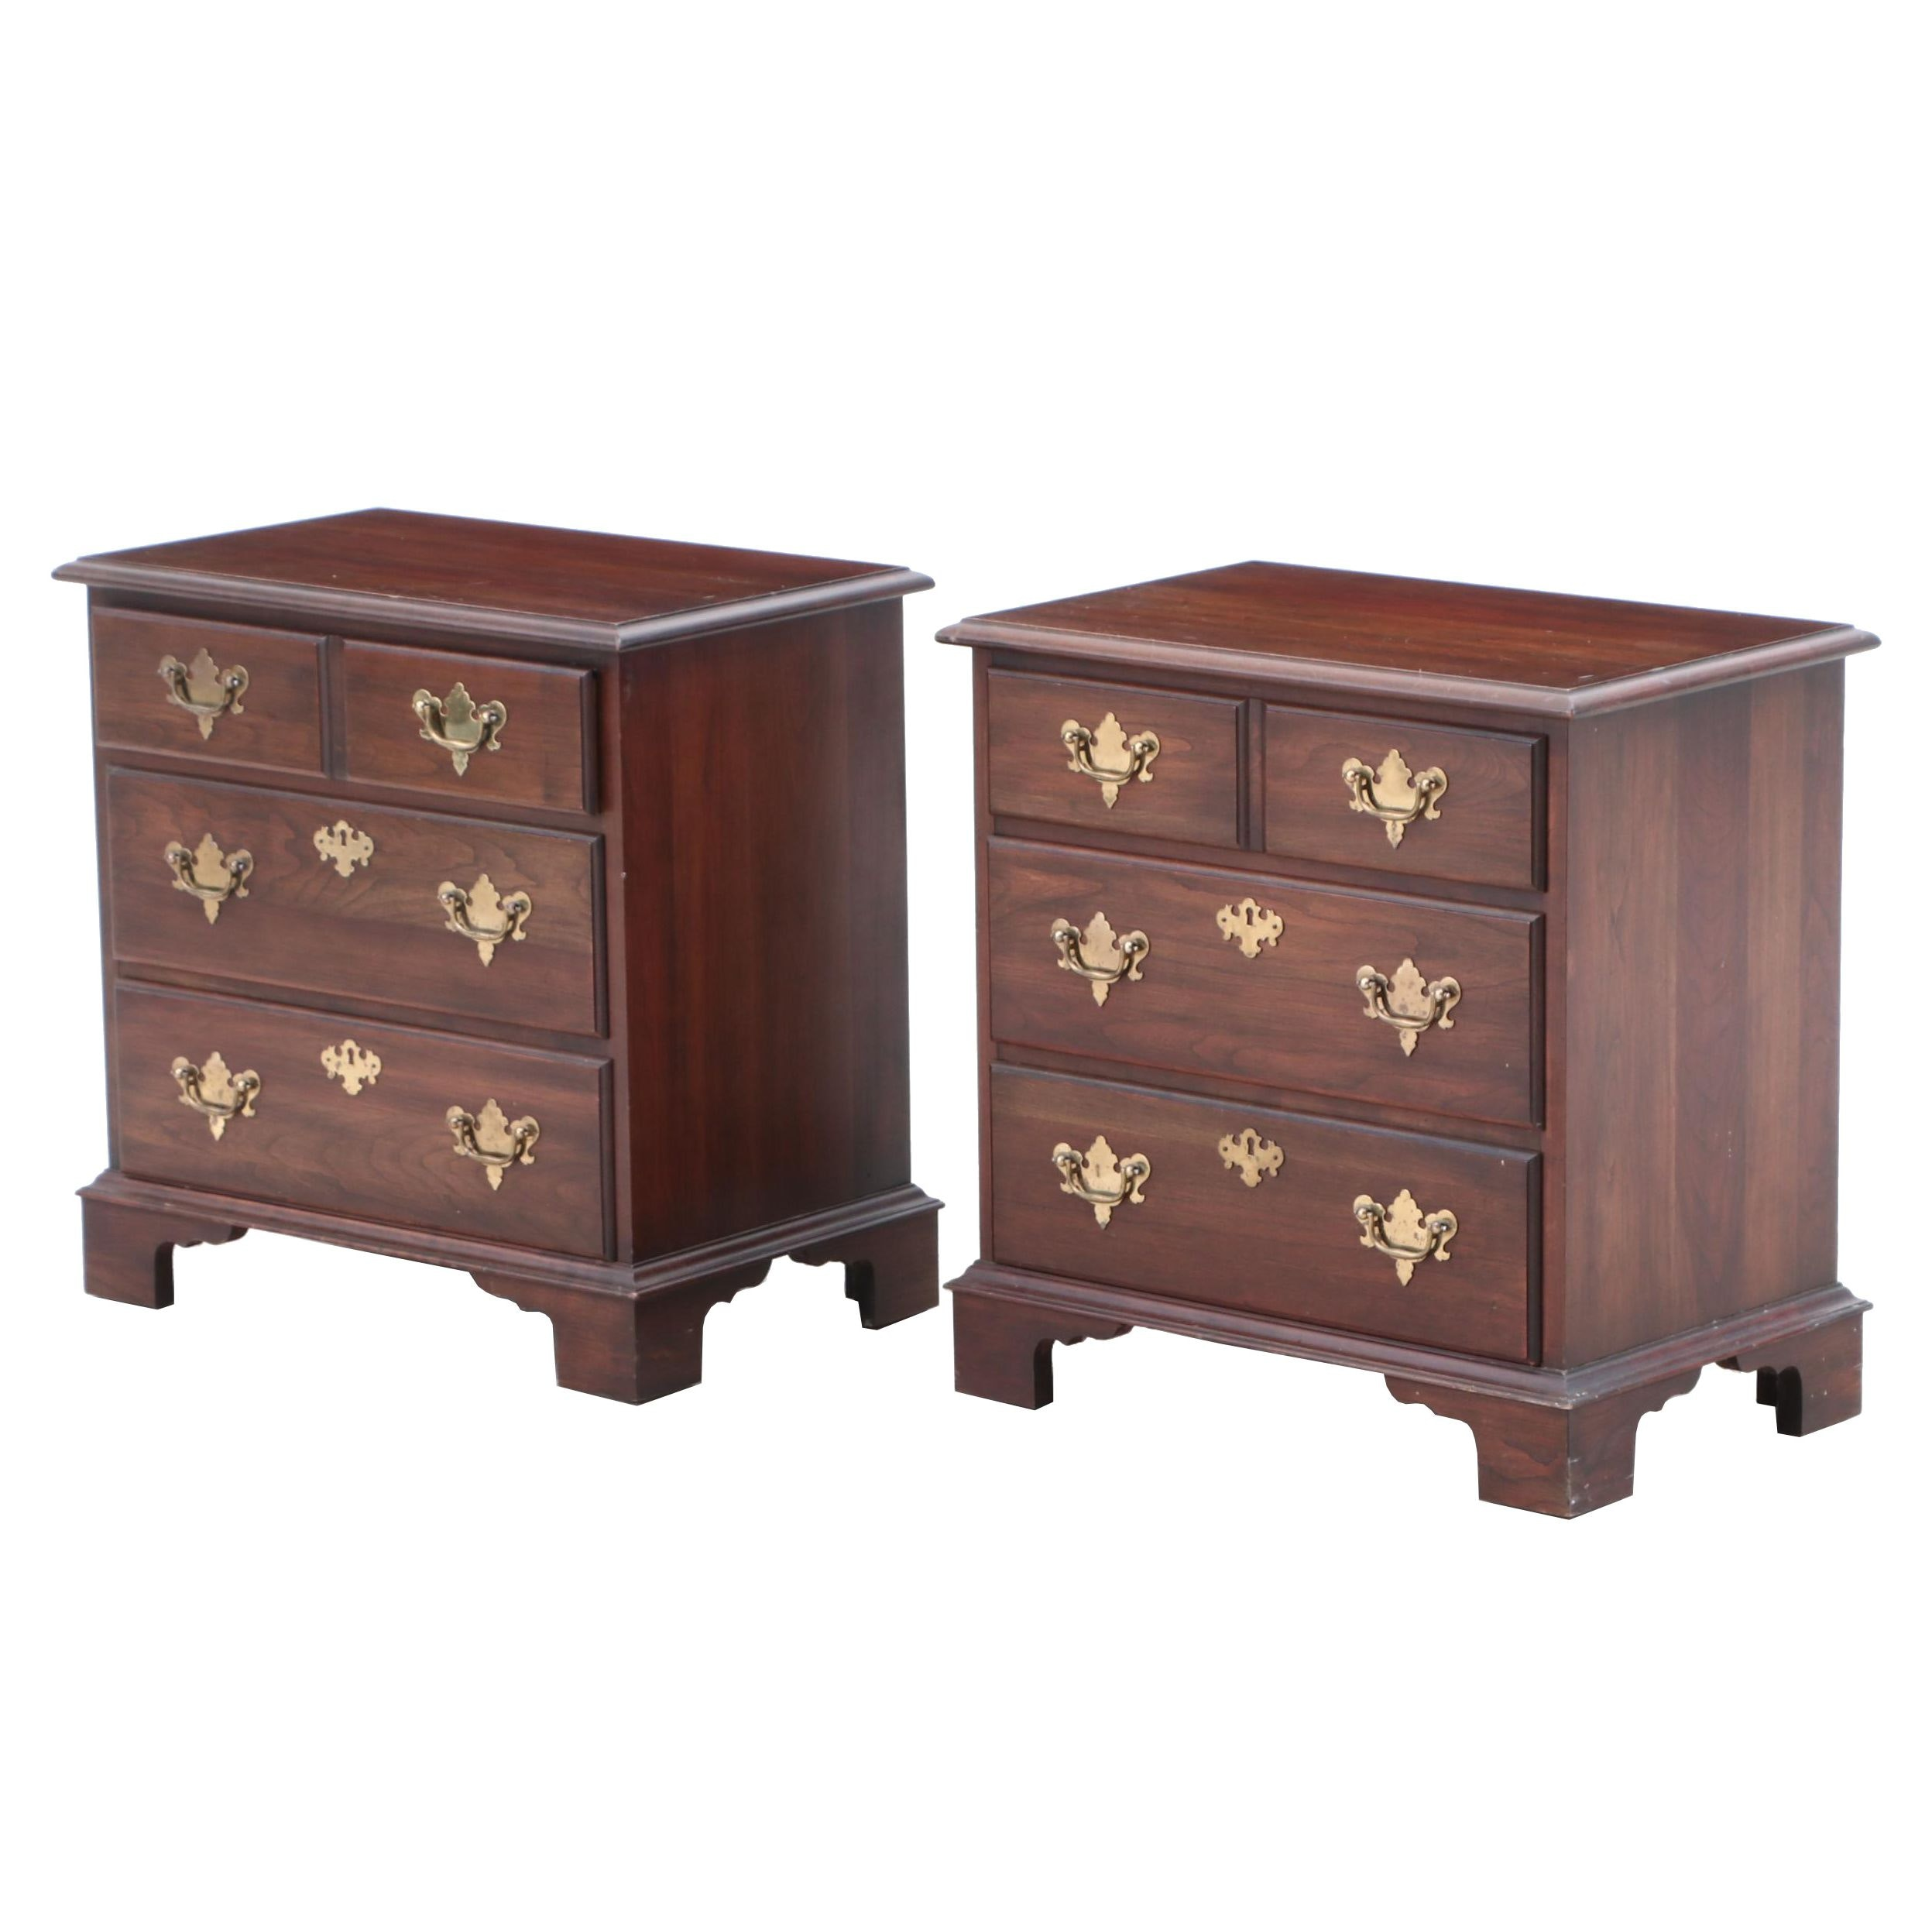 Pennsylvania House Colonial Style Walnut Nightstands, Late 20th Century